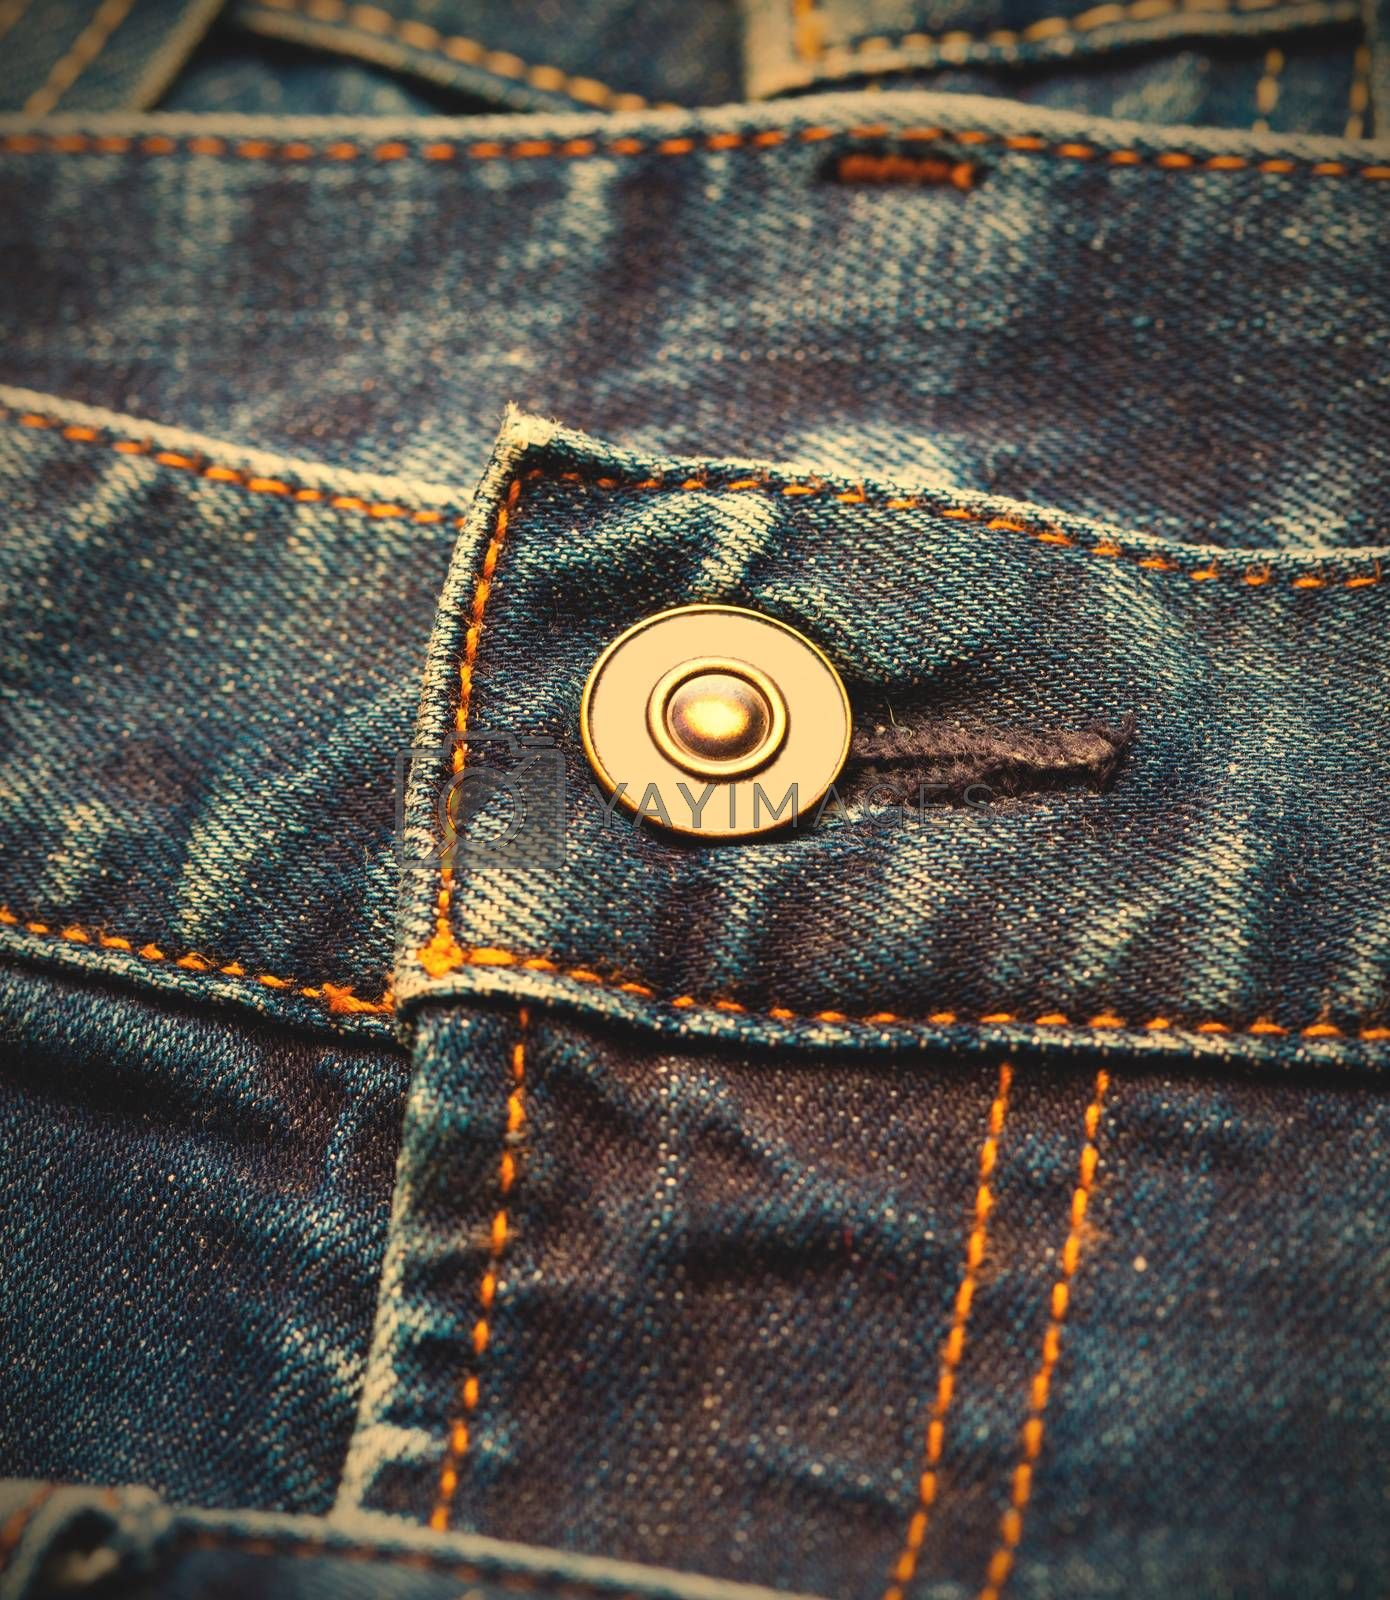 part of blue jeans with button, close up. instagram image retro style